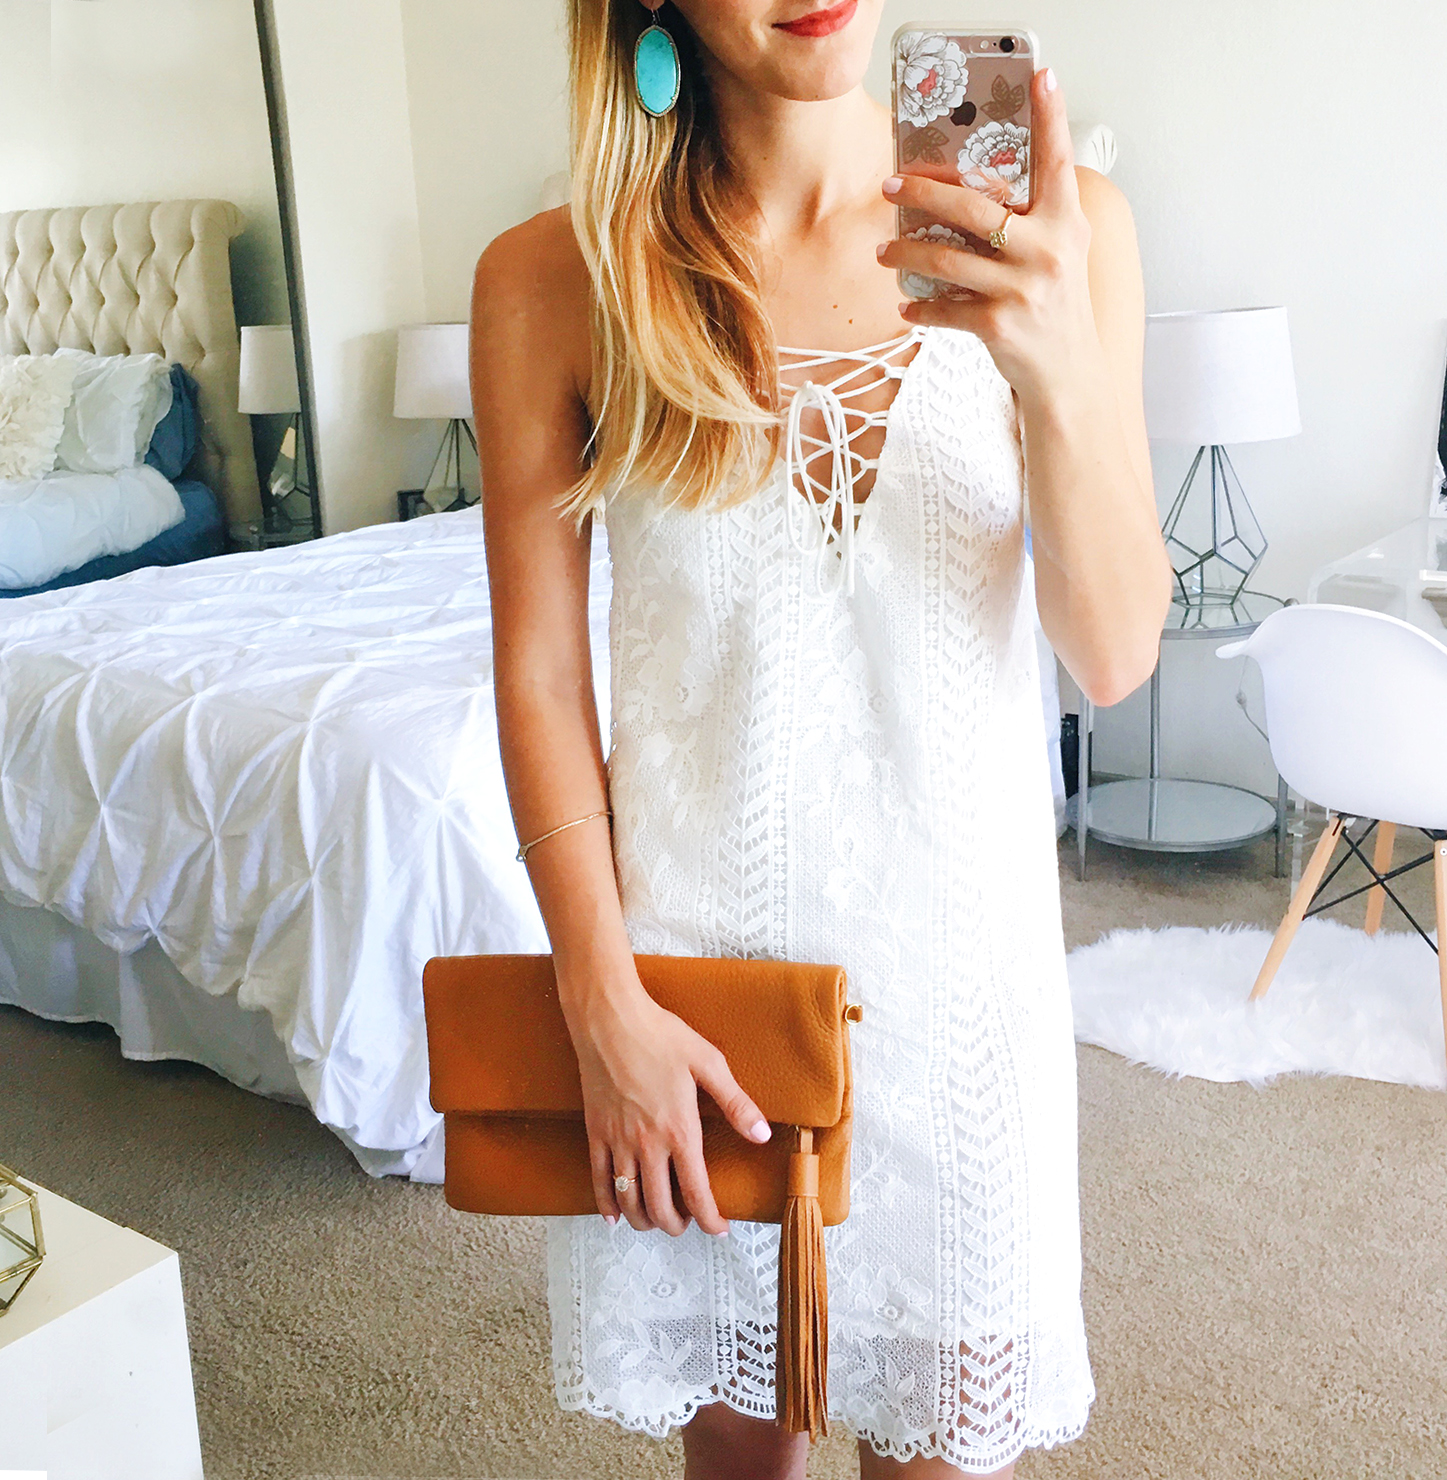 livvyland-blog-olivia-watson-white-dress-ideas-to-wear-to-bridal-events-engagement-party-rehearsal-dinner-bridesmaid-luncheon-wedding-prep-for-astr-lace-front-short-white-dress-1